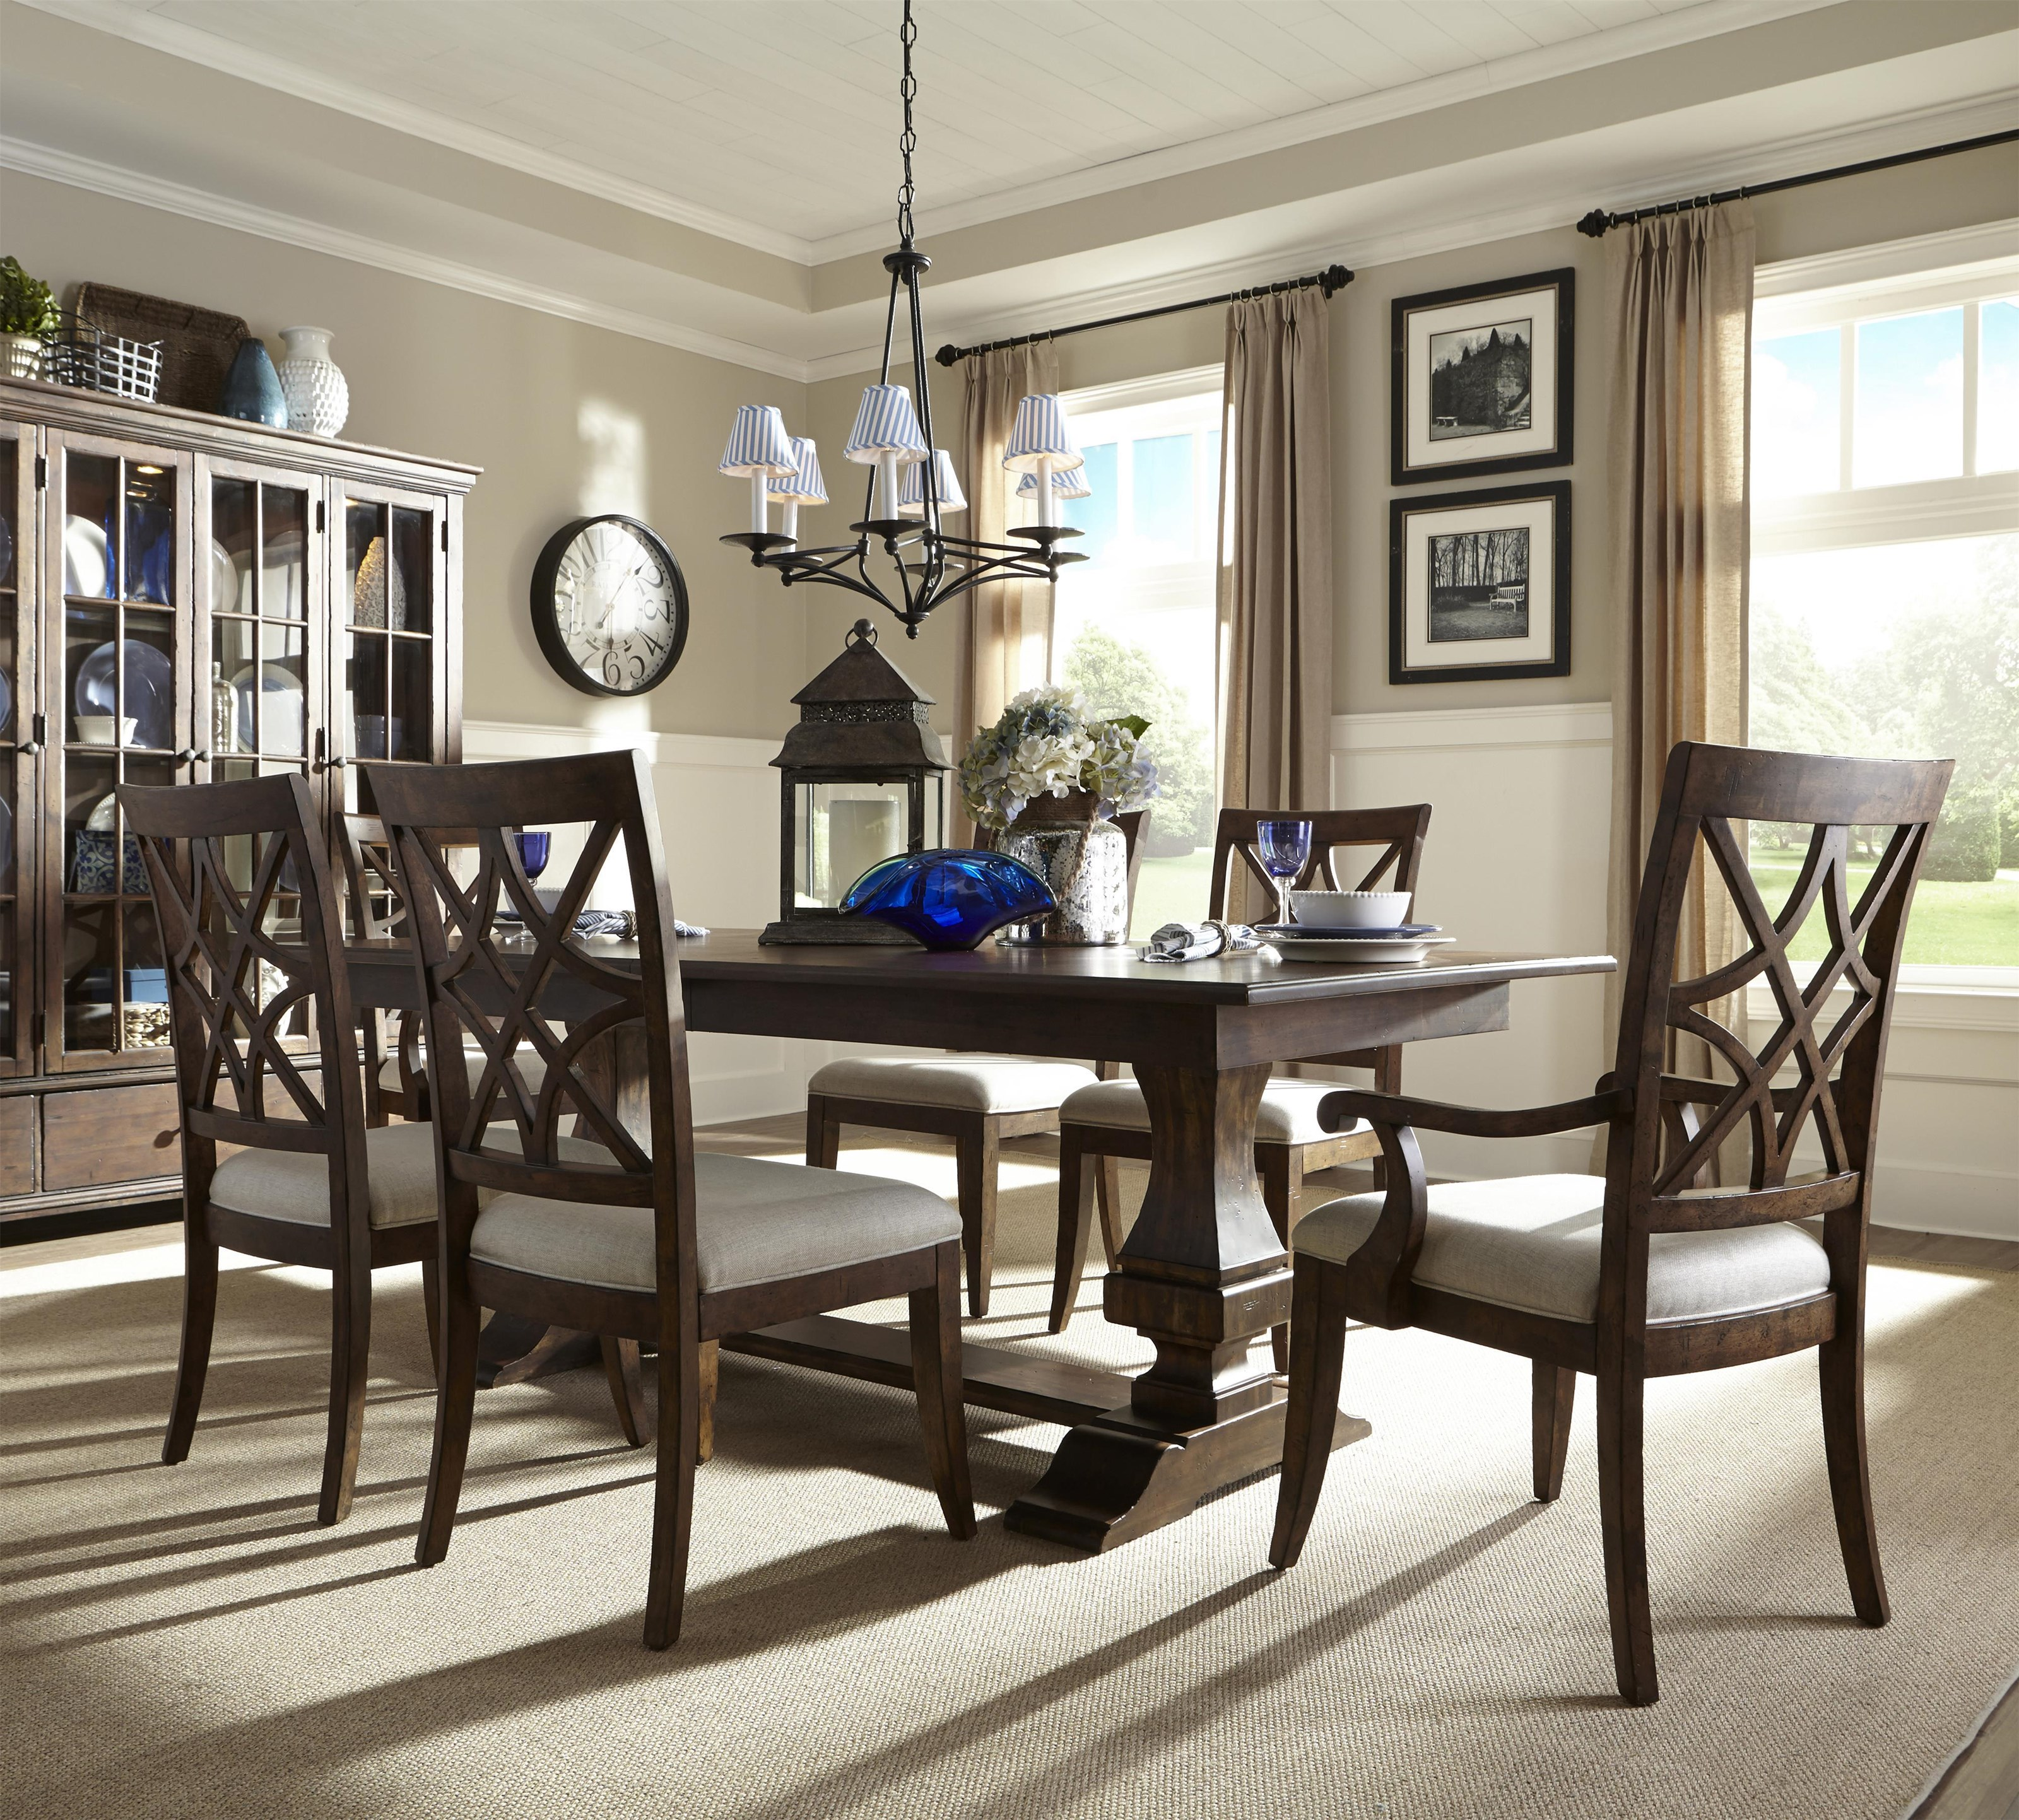 Trisha Yearwood Home 5 Piece Dining Set by Trisha Yearwood Home Collection by Klaussner at Darvin Furniture